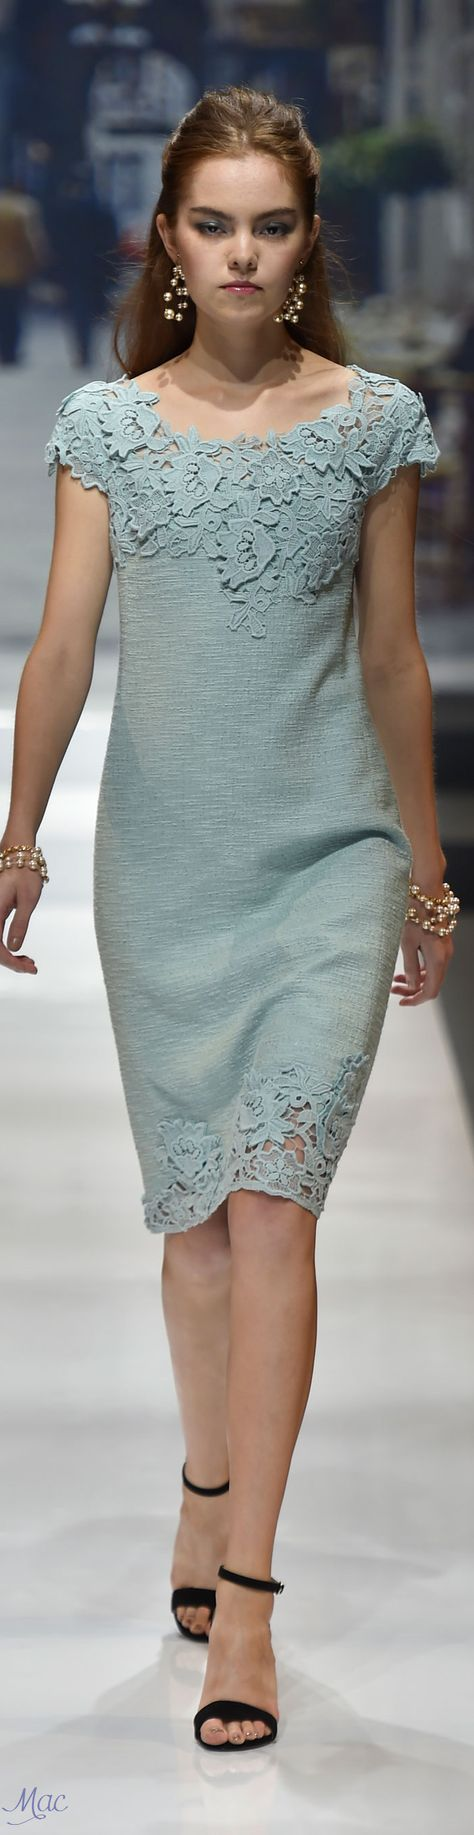 Lace pencil dress - this is so classy! | Fashion. | Pinterest ...